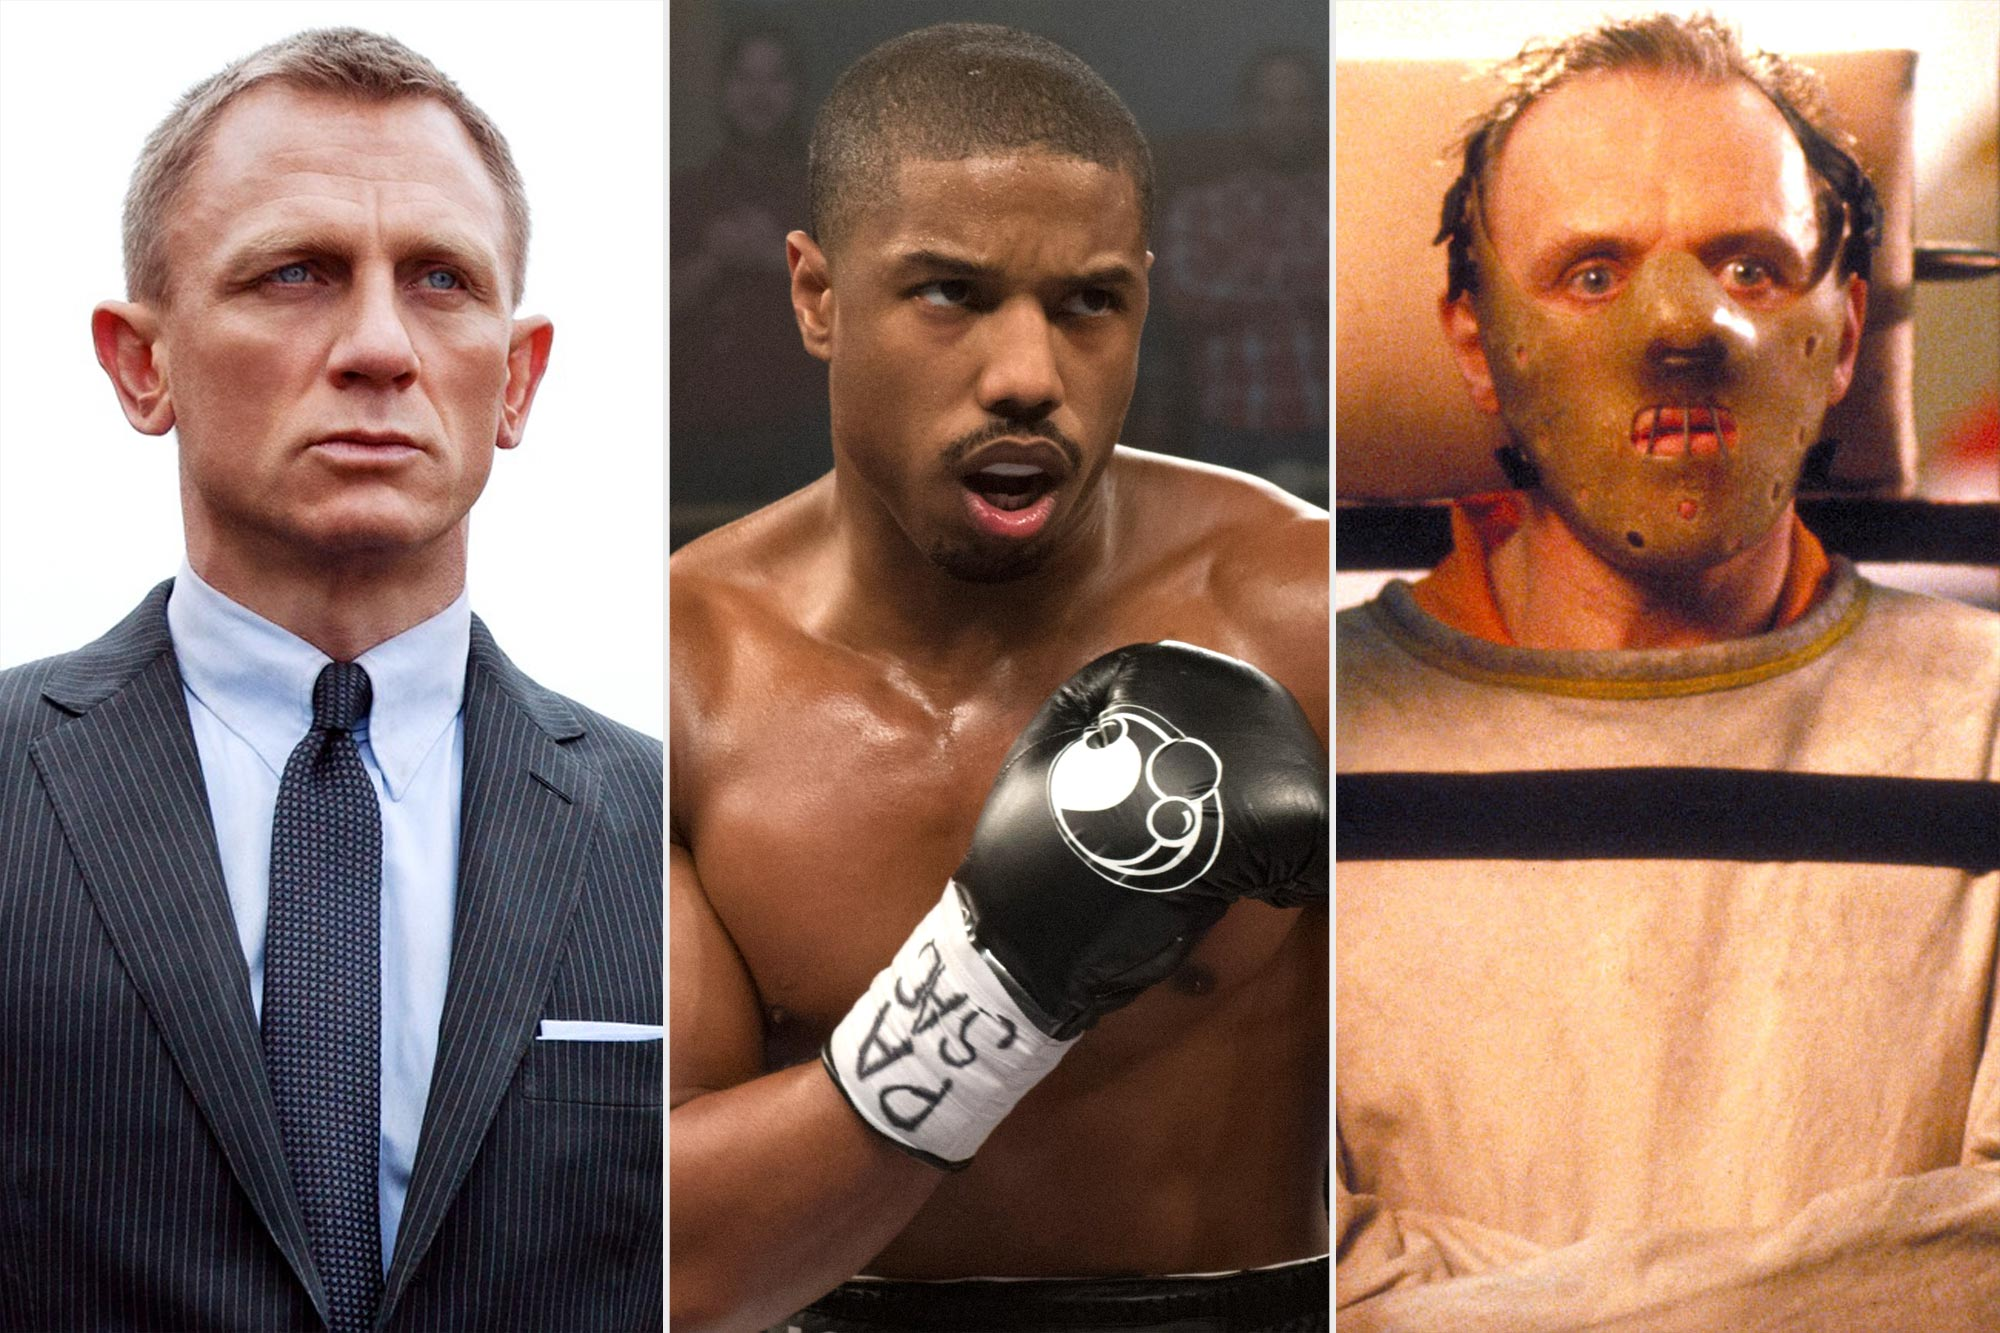 Amazon MGM sale James Bond franchise, Creed, and Silence of the Lambs